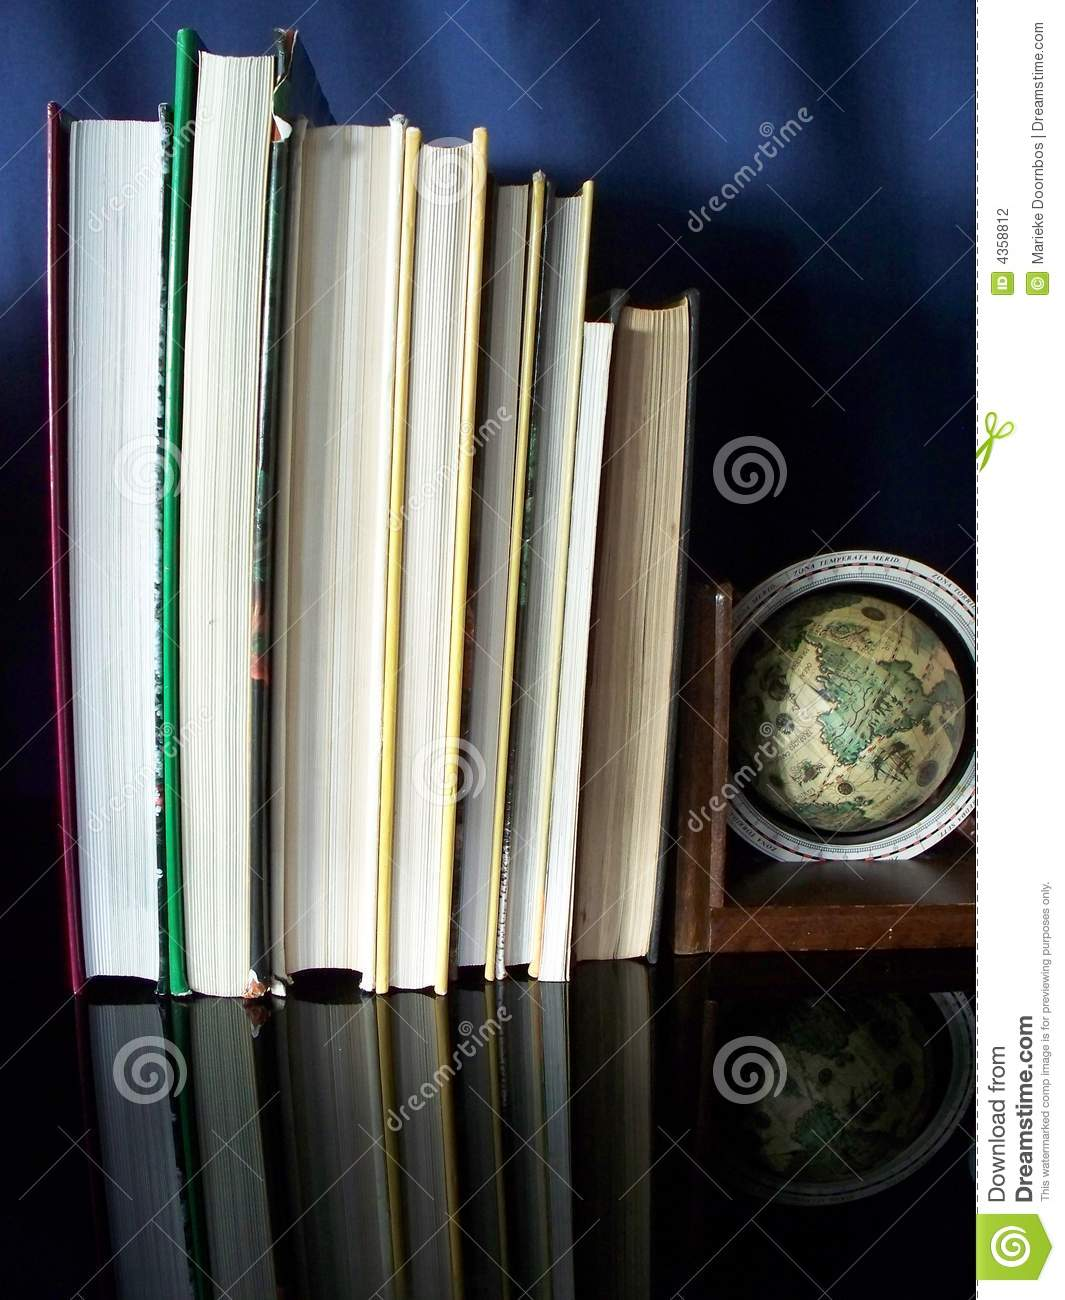 Image of books and magnifying glass on a table close up for Mirror books